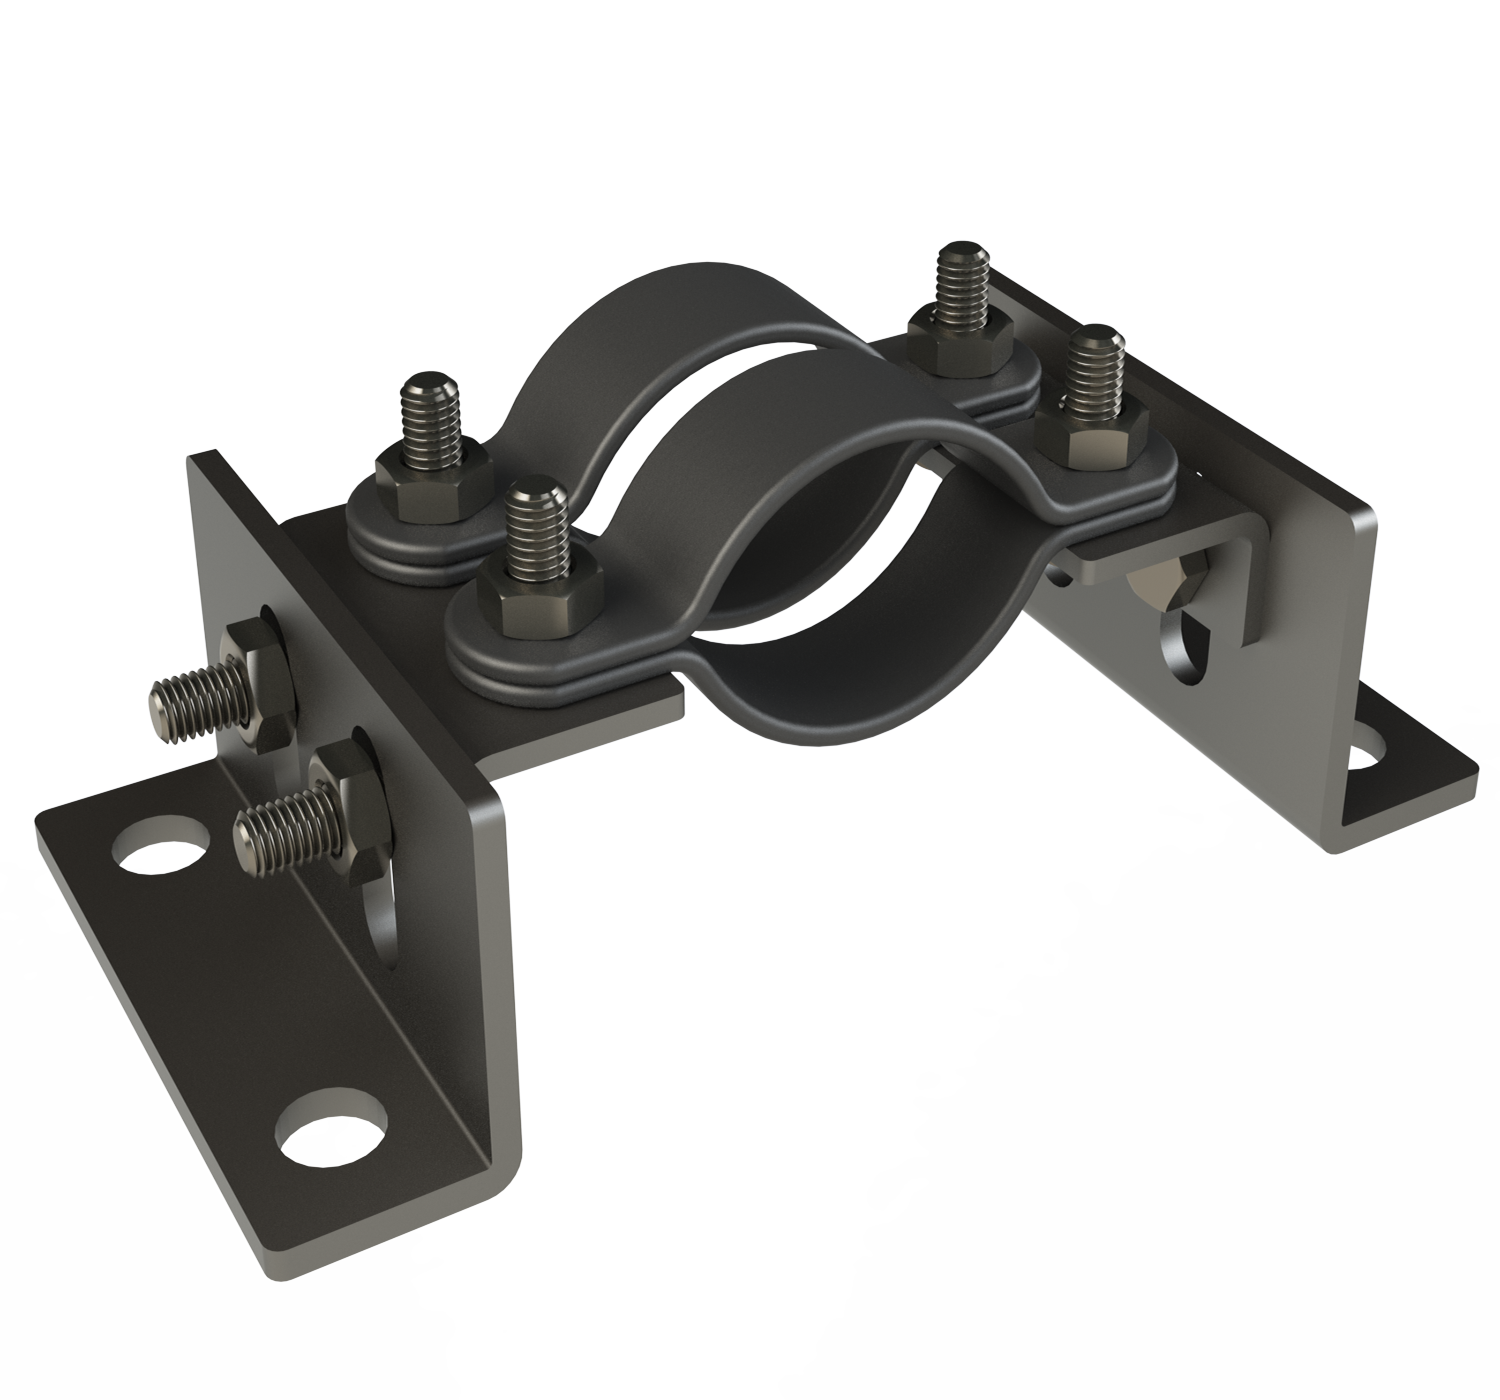 EXCO AAB-1 - Adjustable Anchor Bracket